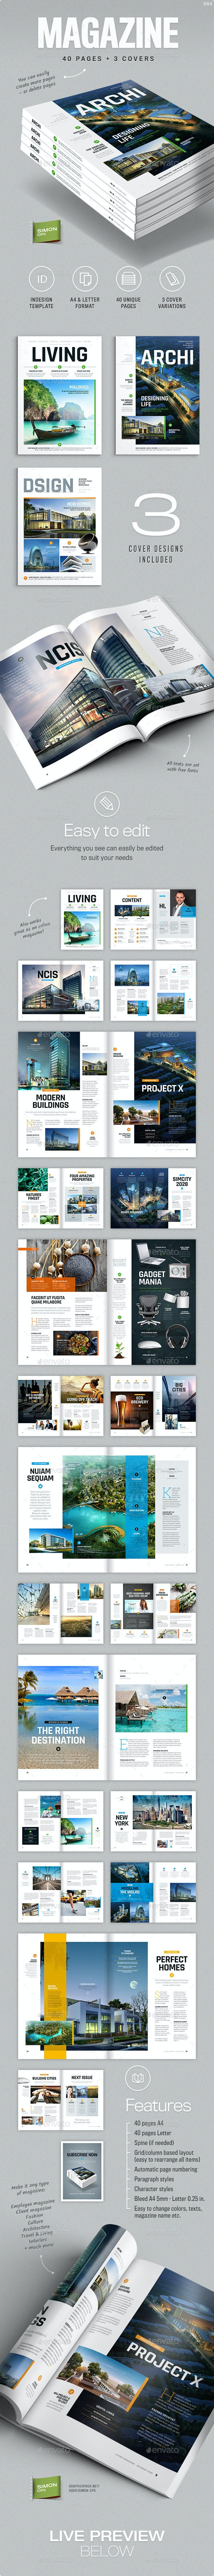 Magazine Template A4 and Letter - Living - Magazines Print Templates